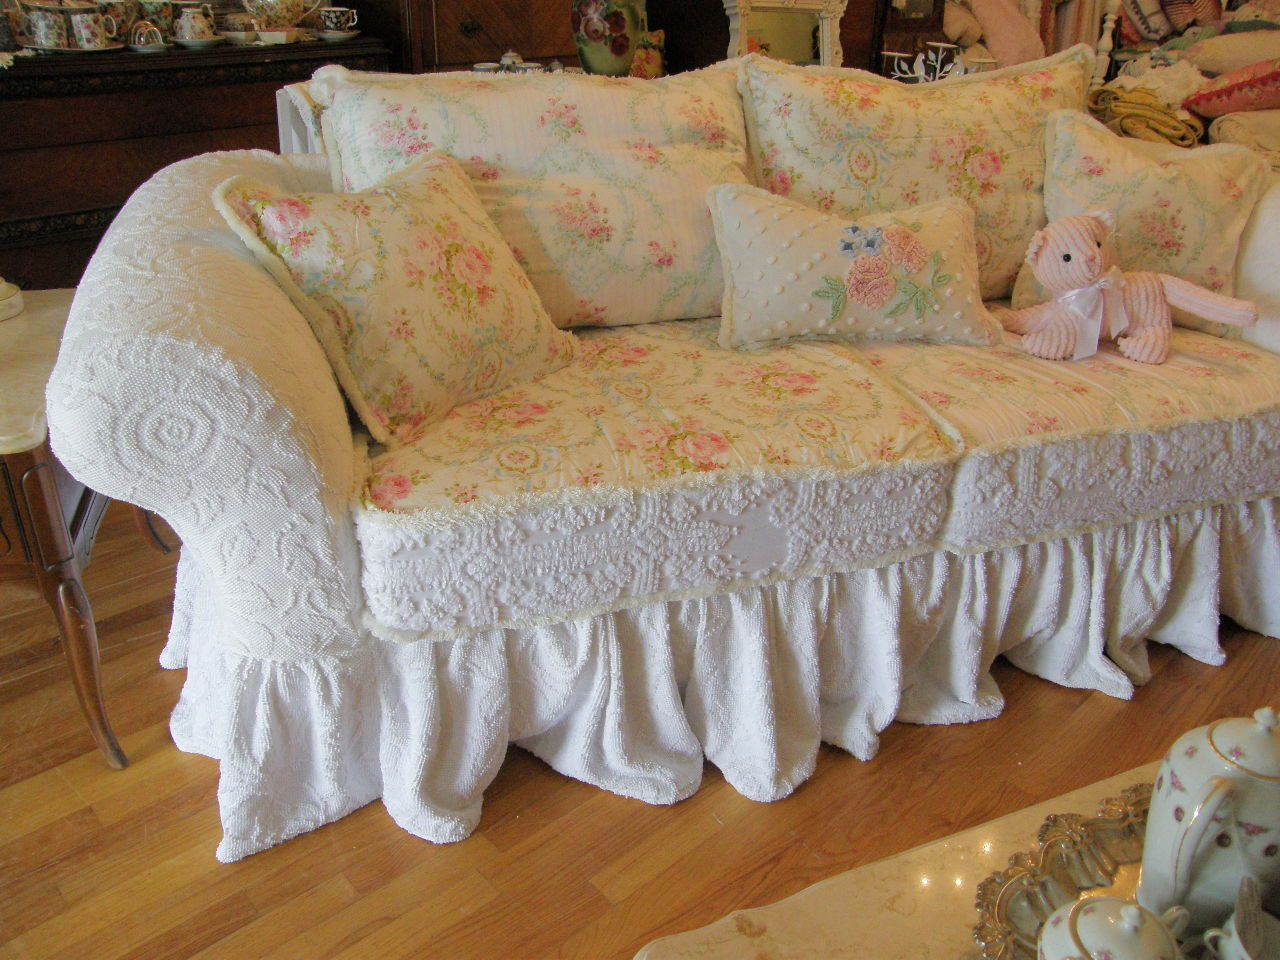 Couch Shabby Chic Custom Shabby Sofa Chic Chenille Bedspread Slipcover White Pink